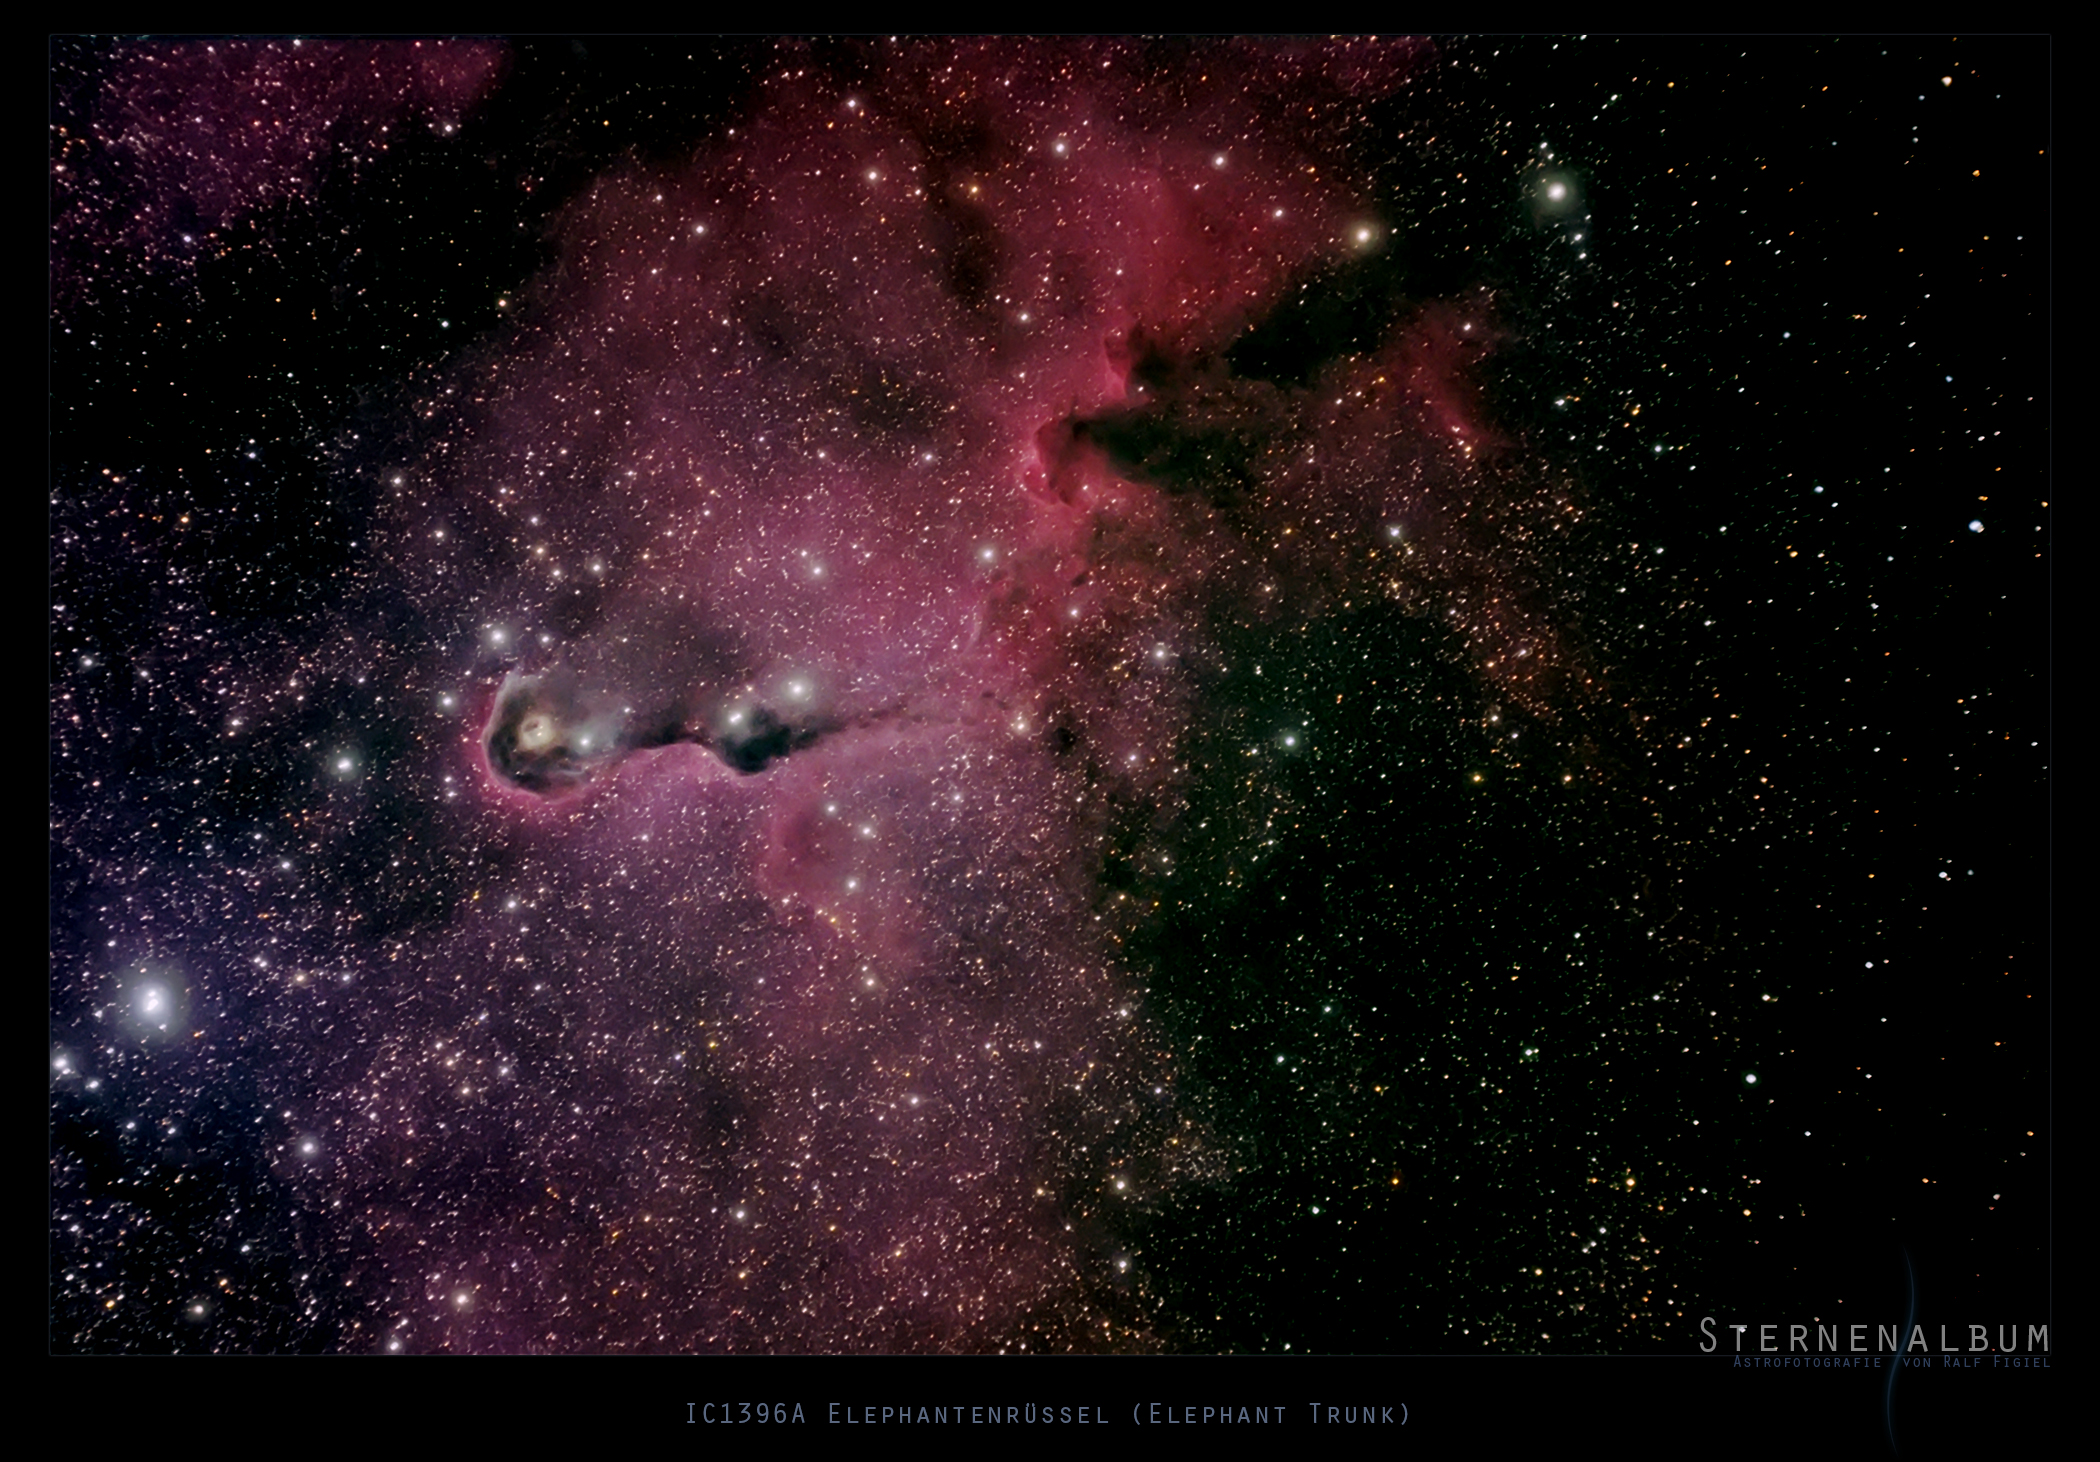 IC1396_20140916_Galileo_12_600_sigma